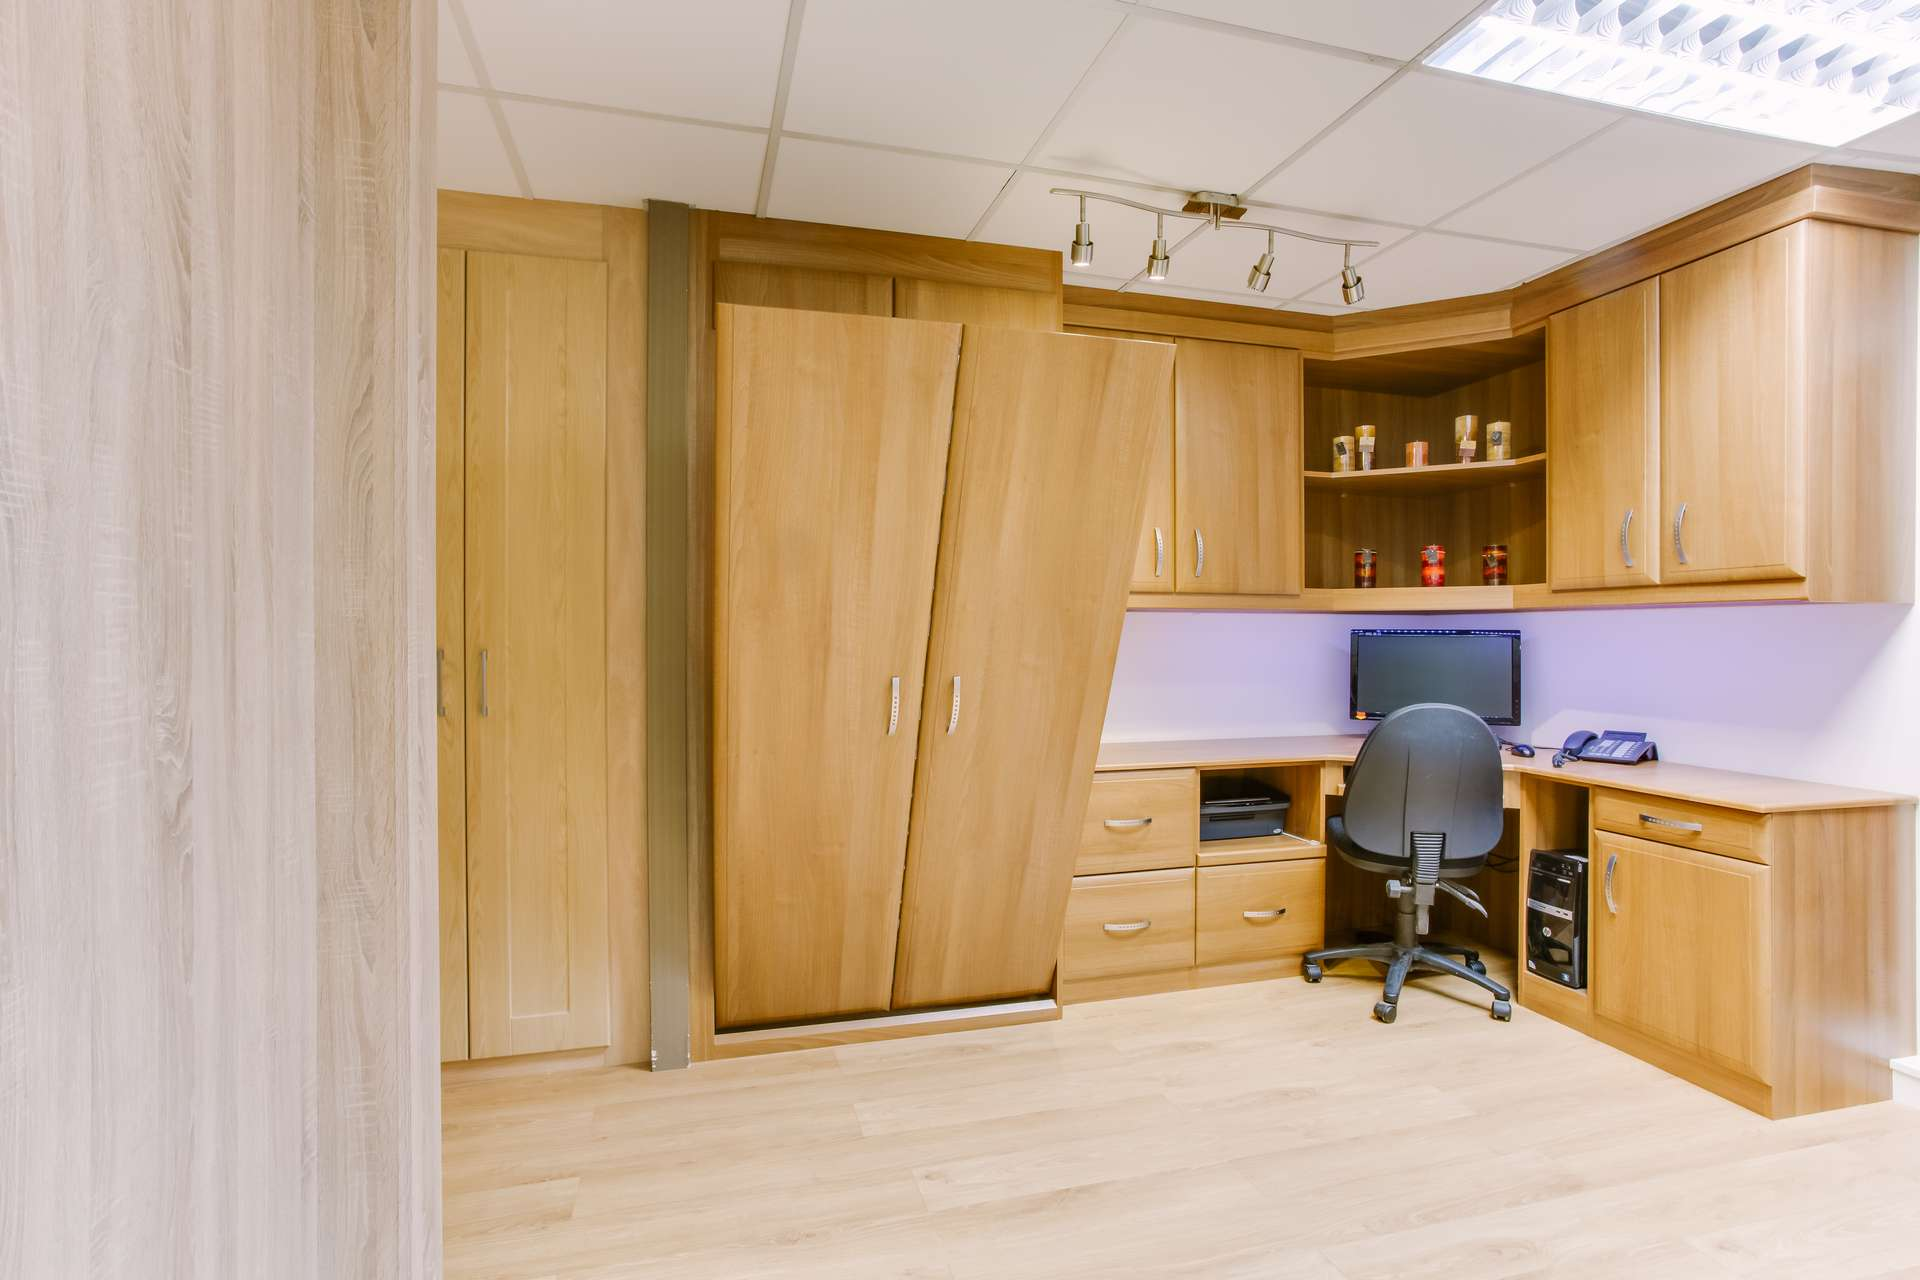 world away furniture. Combine A Foldaway Bed With Home Office To Make Best Use Of Space World Away Furniture R